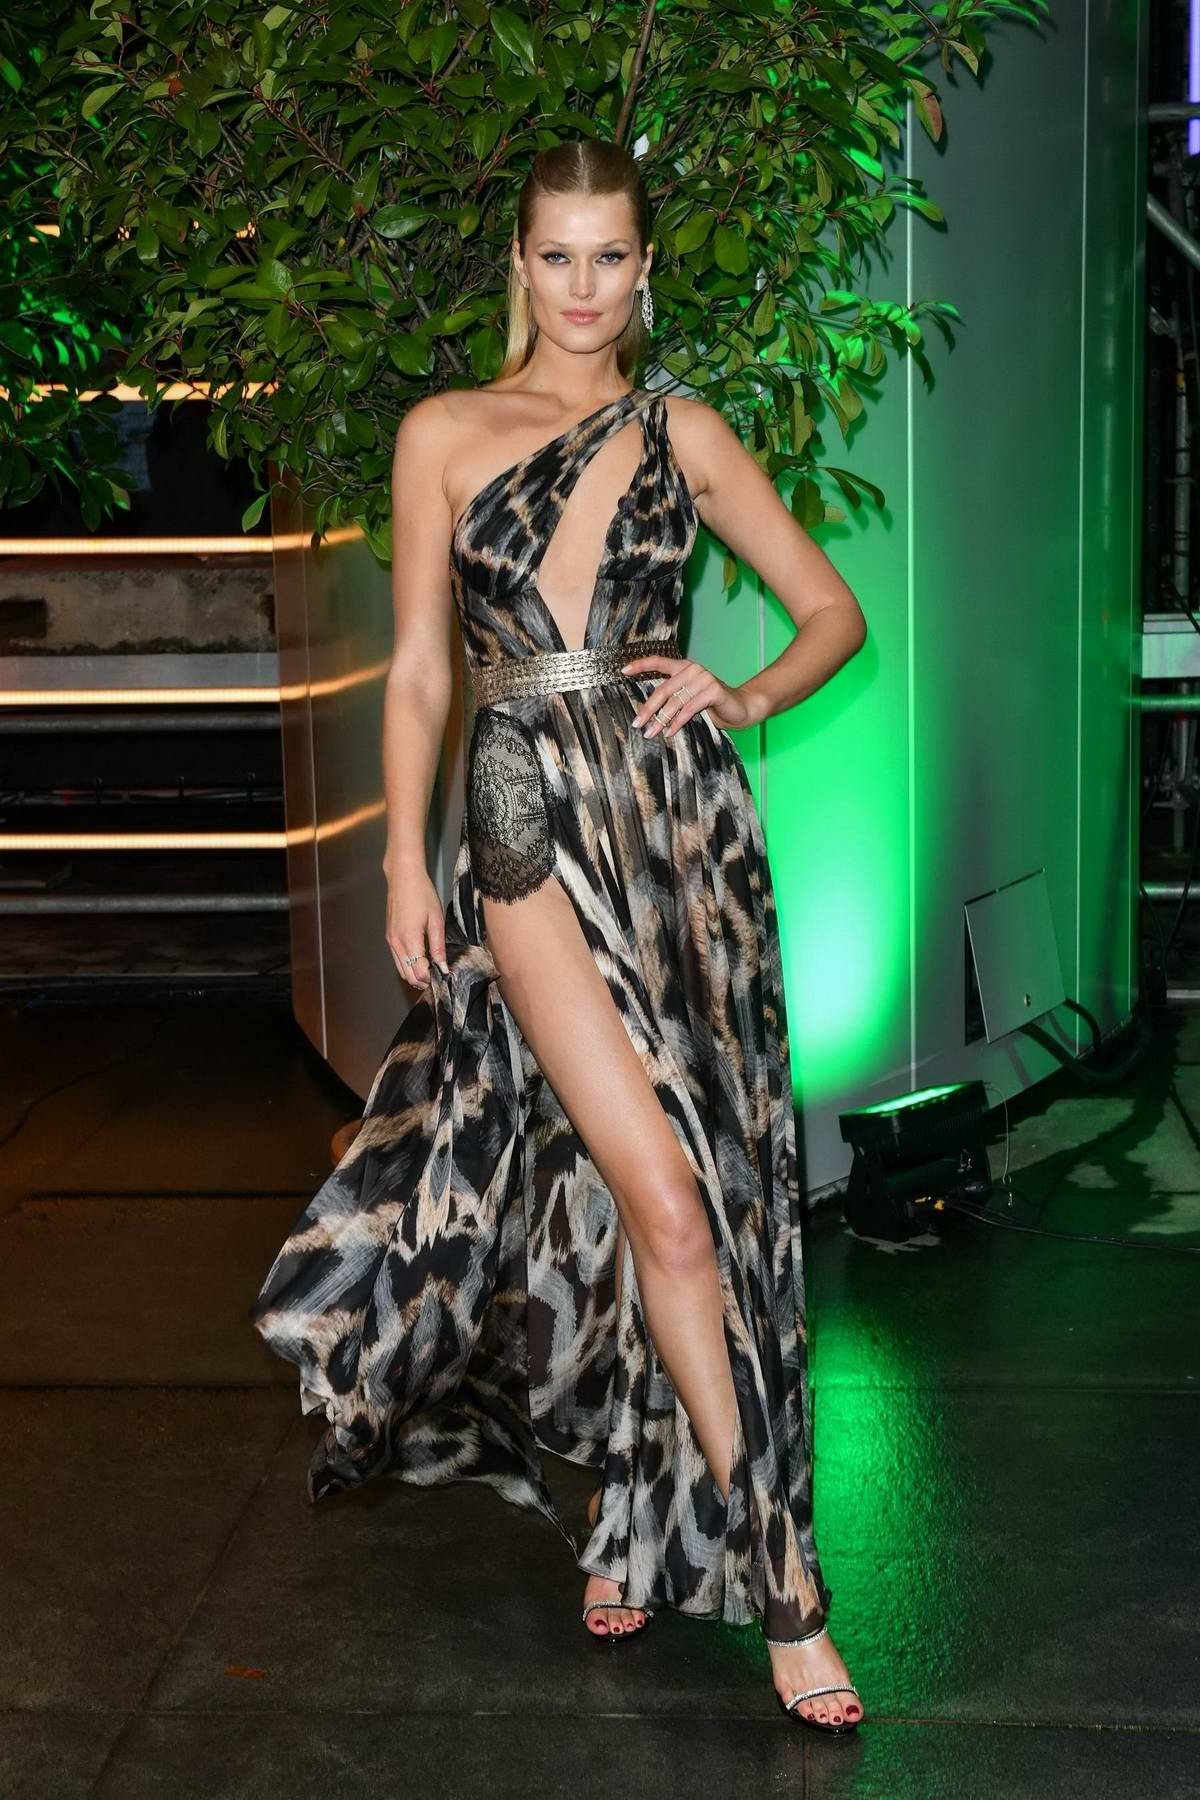 Toni Garrn attend the International Music Awards 2019 at the Verti Music Hall in Berlin, Germany